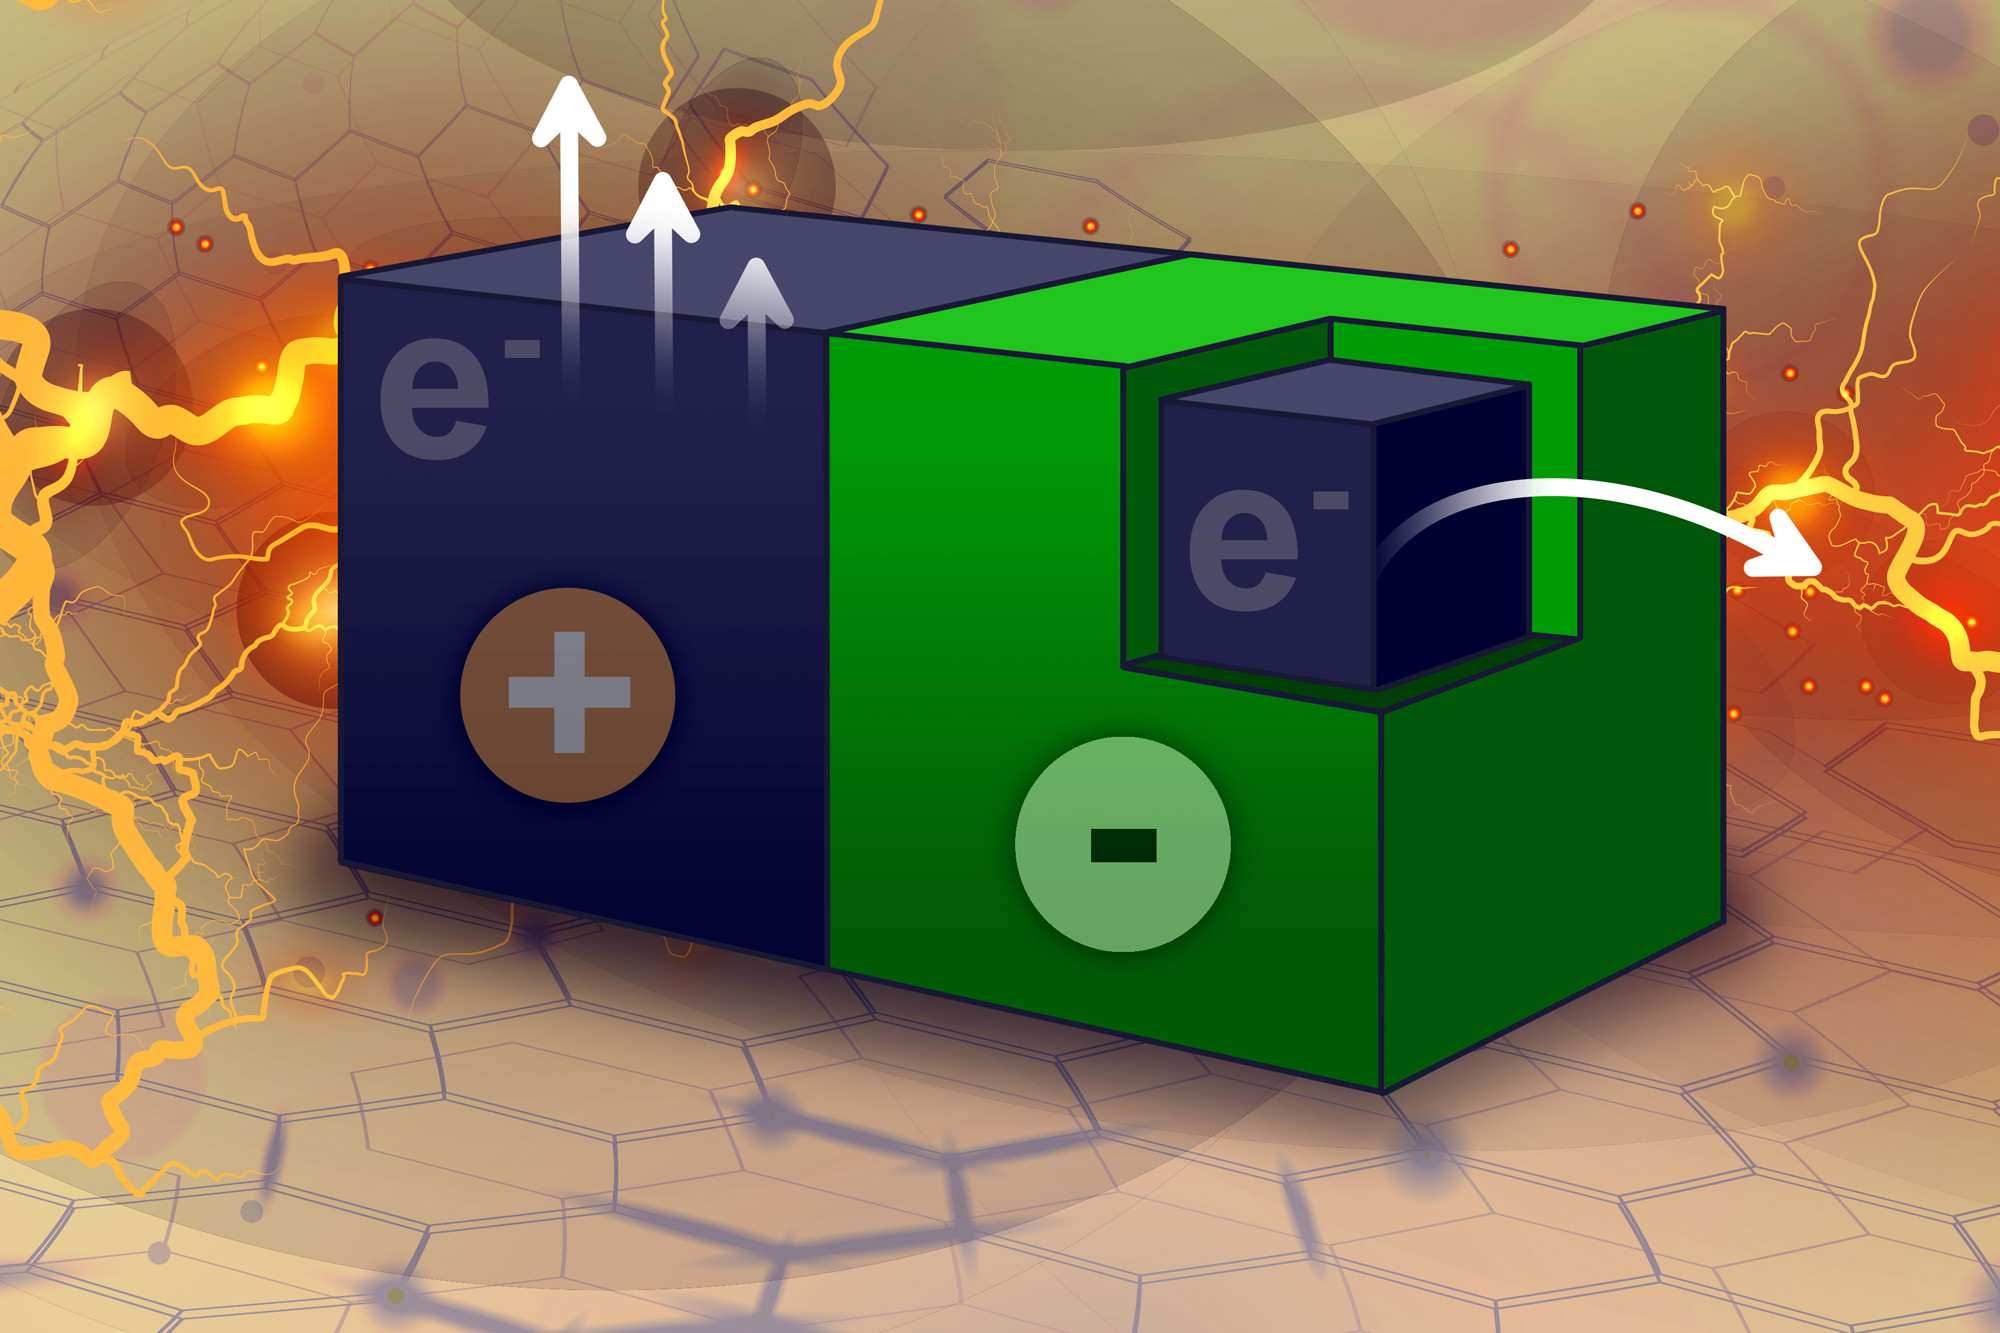 A diagram of the new generator. Particles of carbon nanotubes (blue) are partly coated in a Teflon0like polymer (green), which induces electric current to flow from the coated to uncoated side